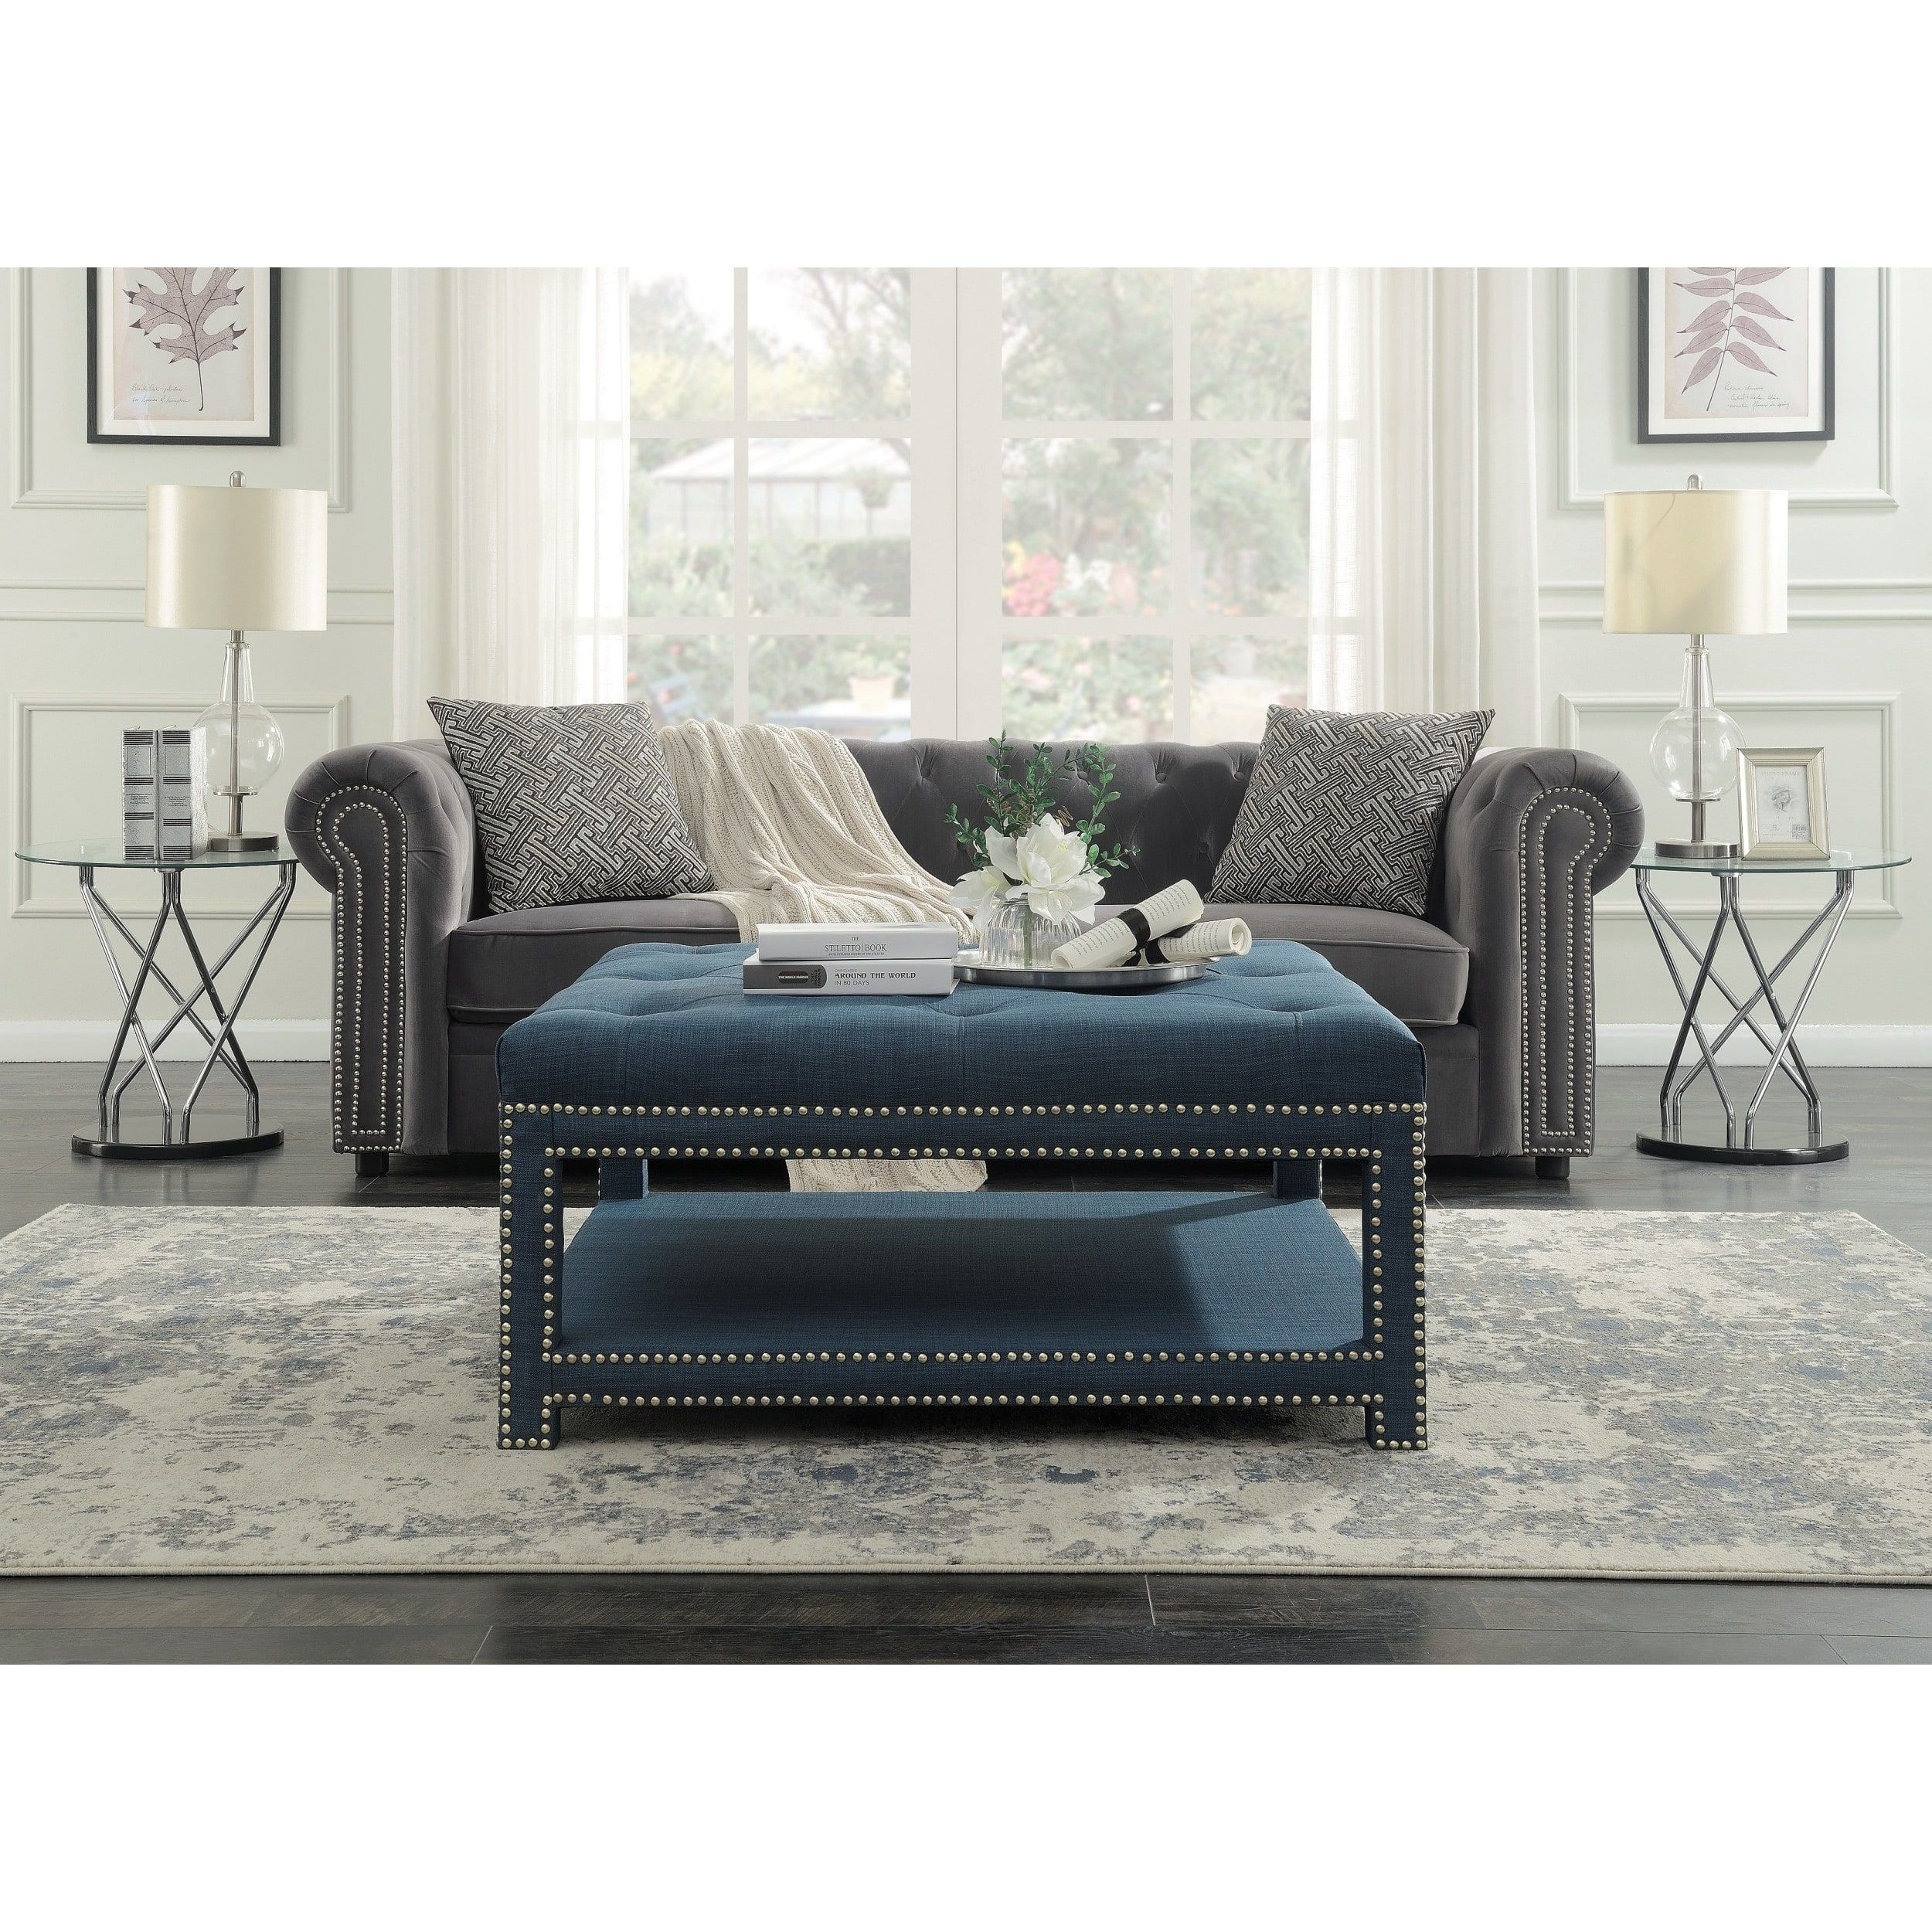 Chic Home Micah Coffee Table Ottoman in